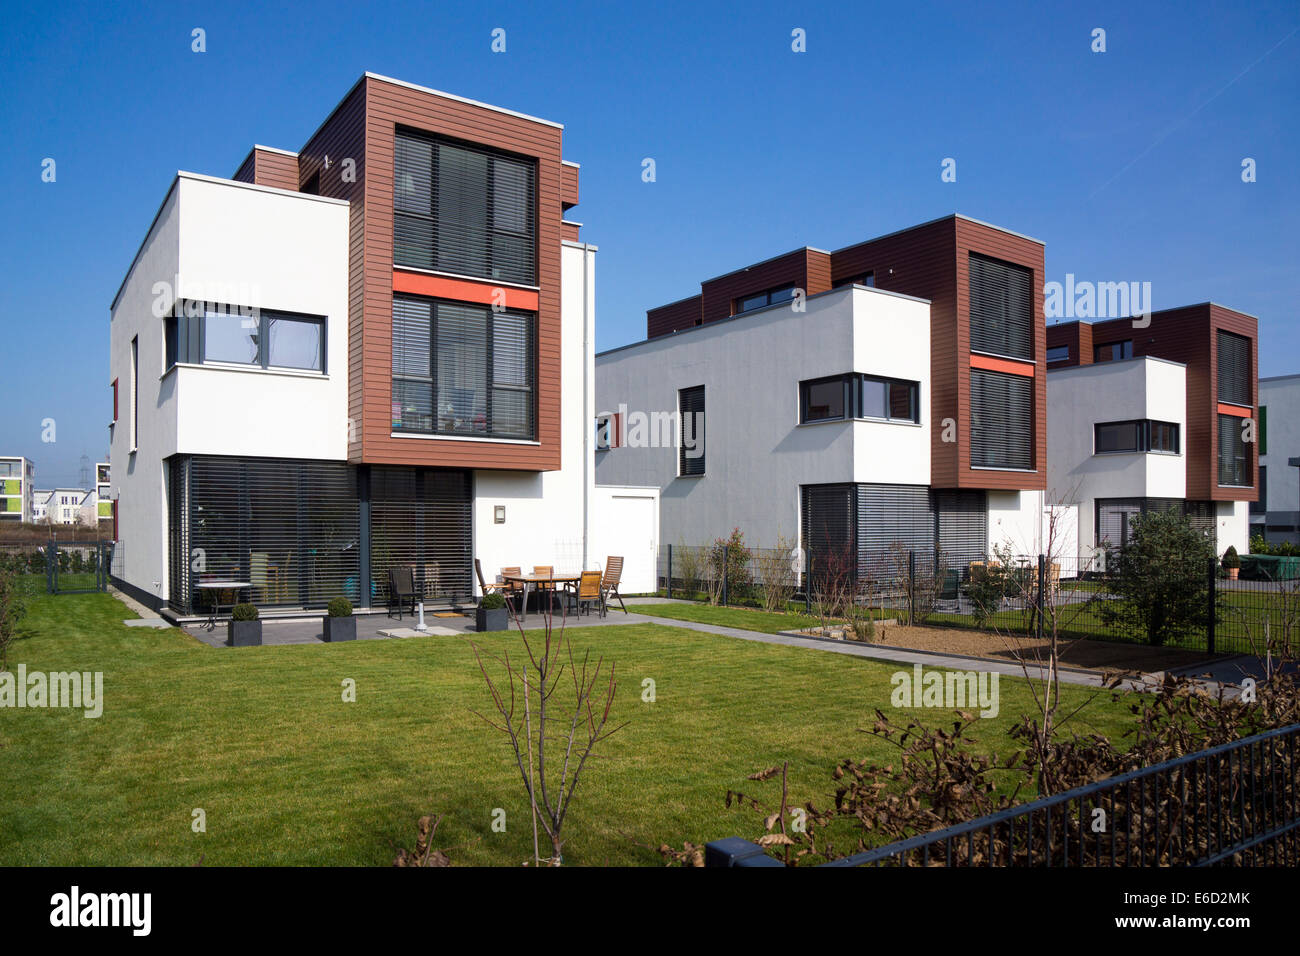 Bauhausstil Architektur Einfamilienhaus Moderne Architektur Im Bauhausstil